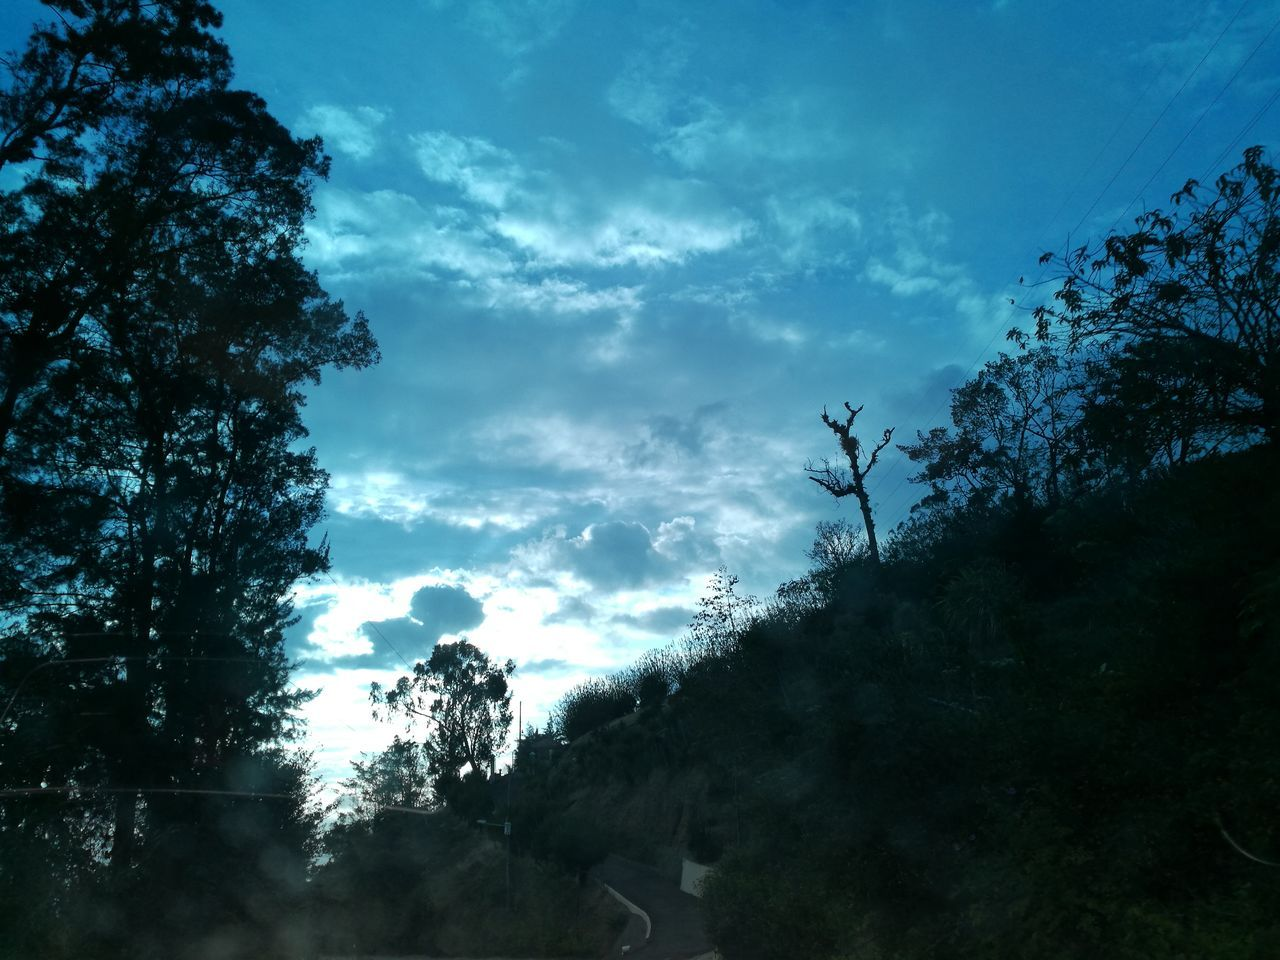 tree, silhouette, sky, outdoors, cloud - sky, nature, no people, day, low angle view, beauty in nature, scenics